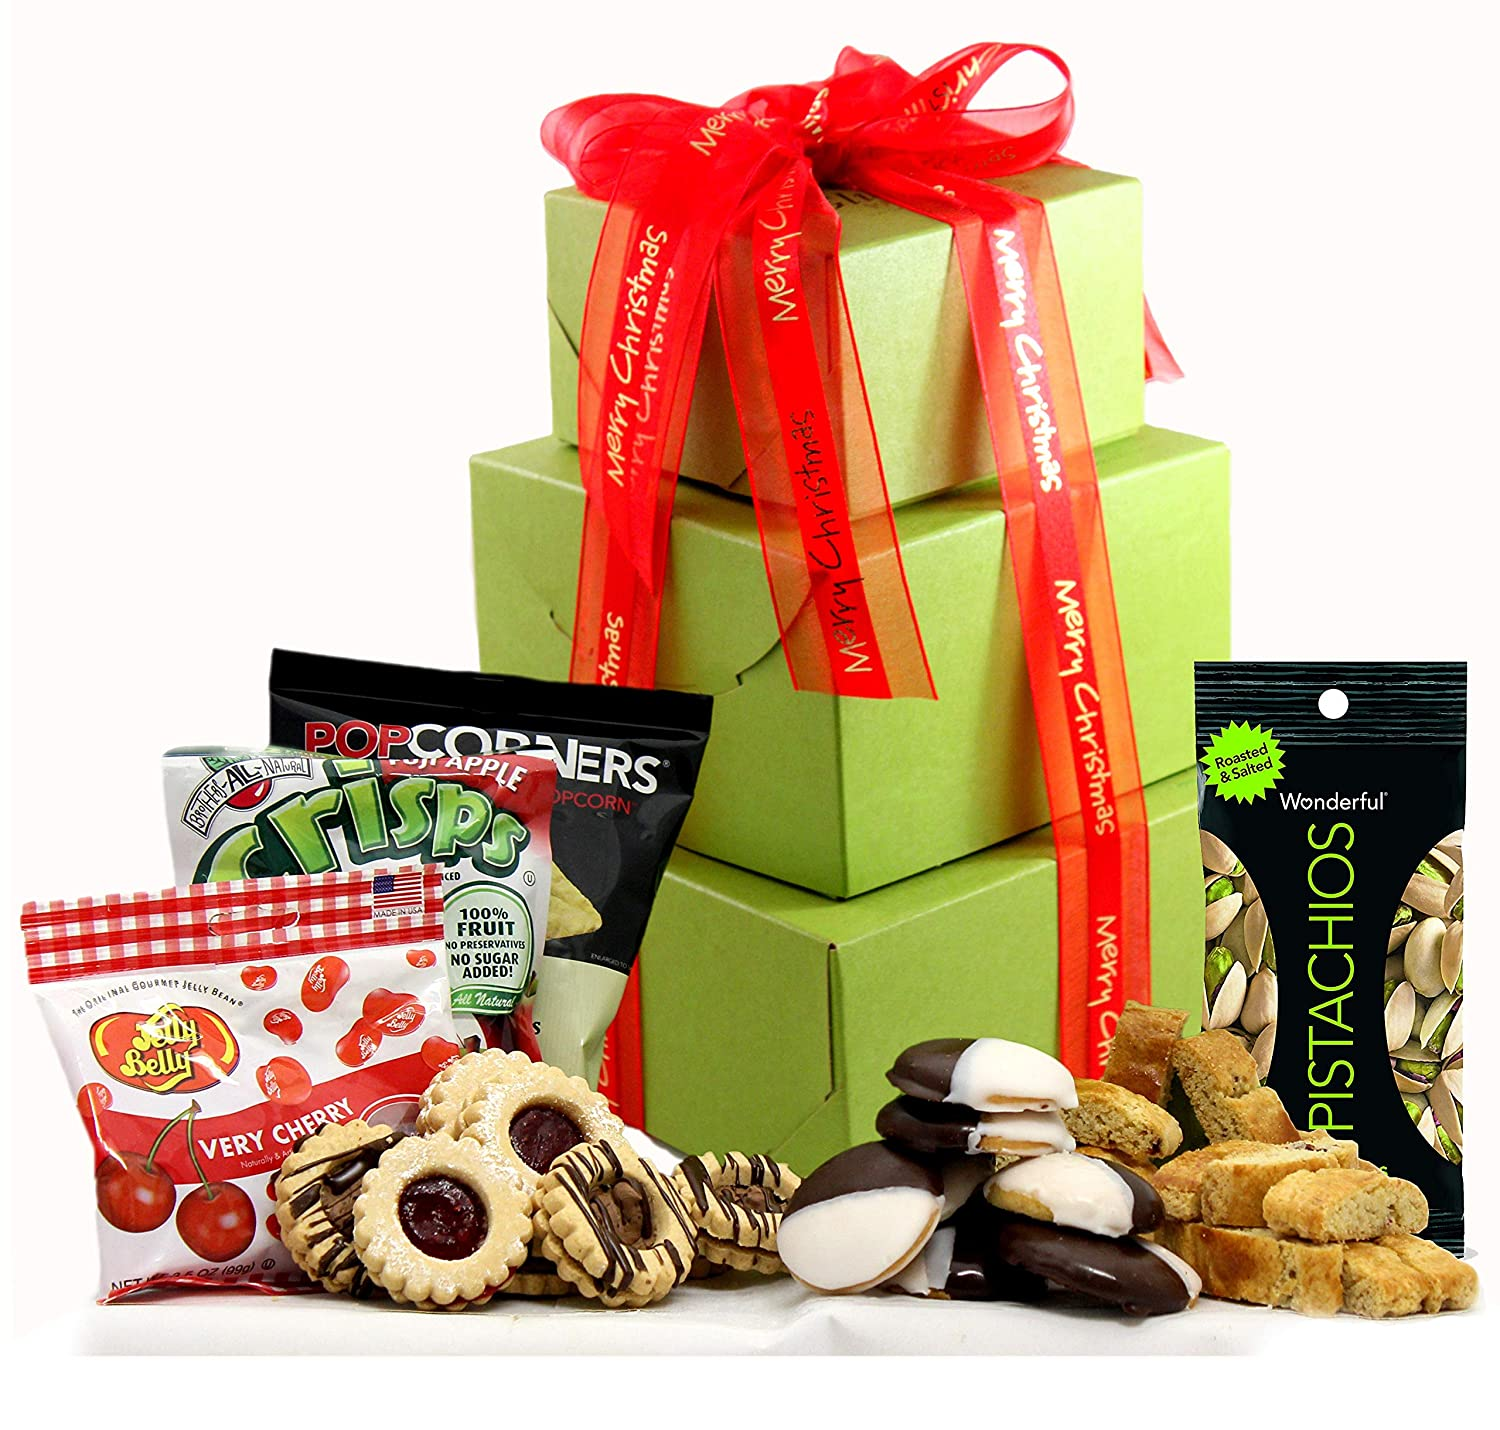 Merry Christmas Gift Tower Gluten Free - Deluxe Holiday Gift Tower with Gourmet Biscotti, Cookies, Popcorn, Sweets, Fruit & Nuts, Prime Holiday Gift Basket by Gluten Free Palace